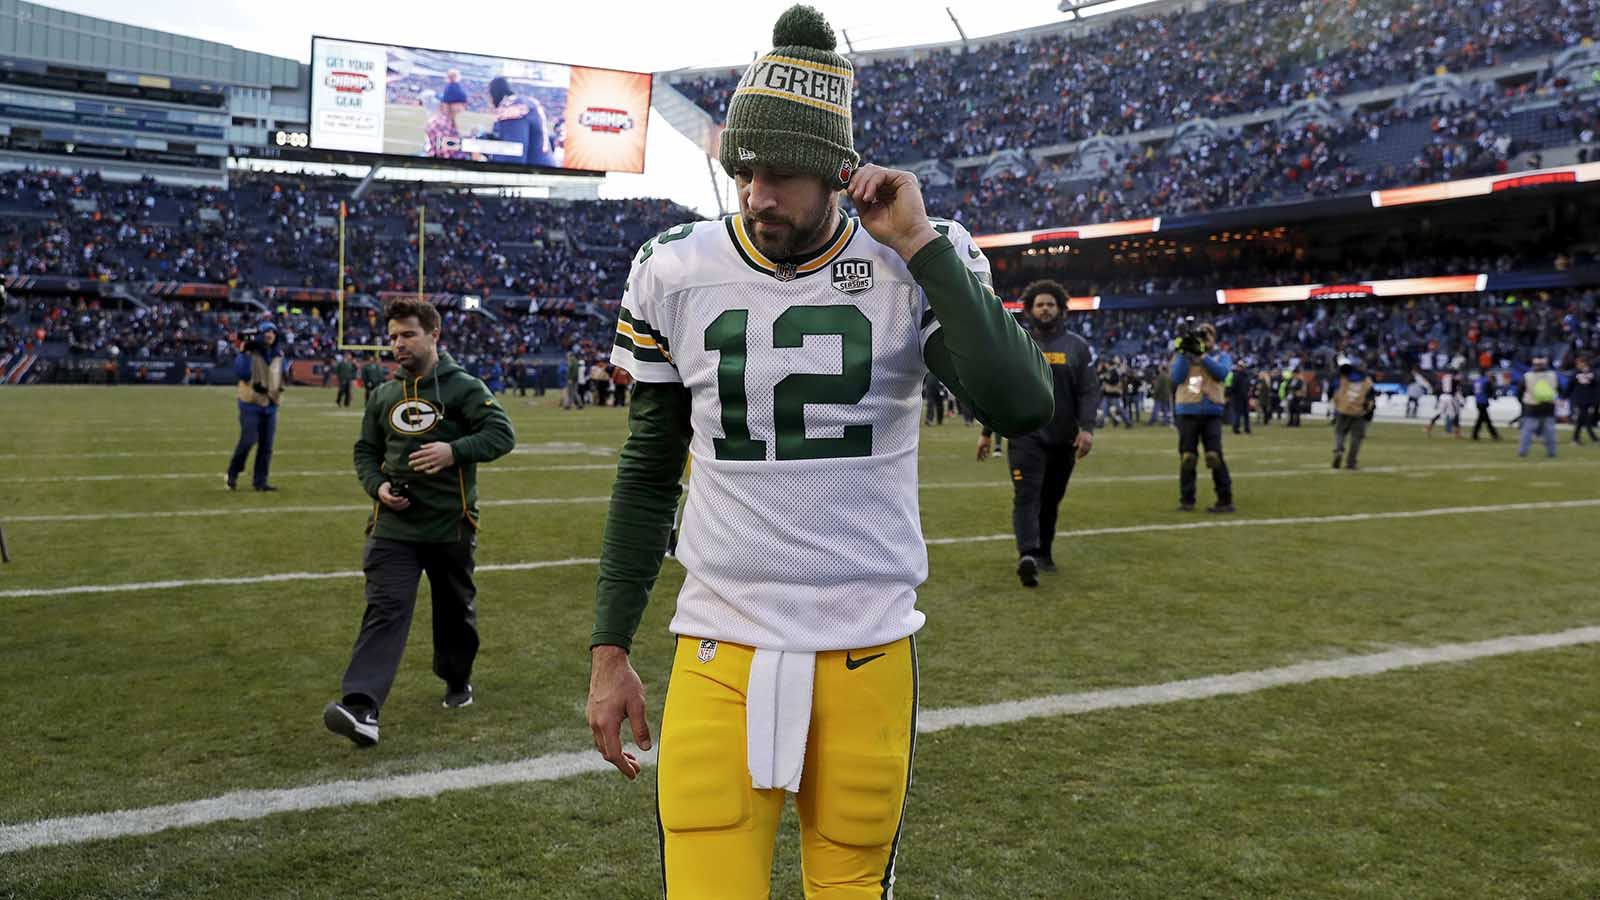 Green Bay Packers quarterback Aaron Rodgers (12) leaves the field after an NFL football game against the Chicago Bears Sunday, Dec. 16, 2018, in Chicago. The Bears won 24-17. (AP Photo/Nam Y. Huh)